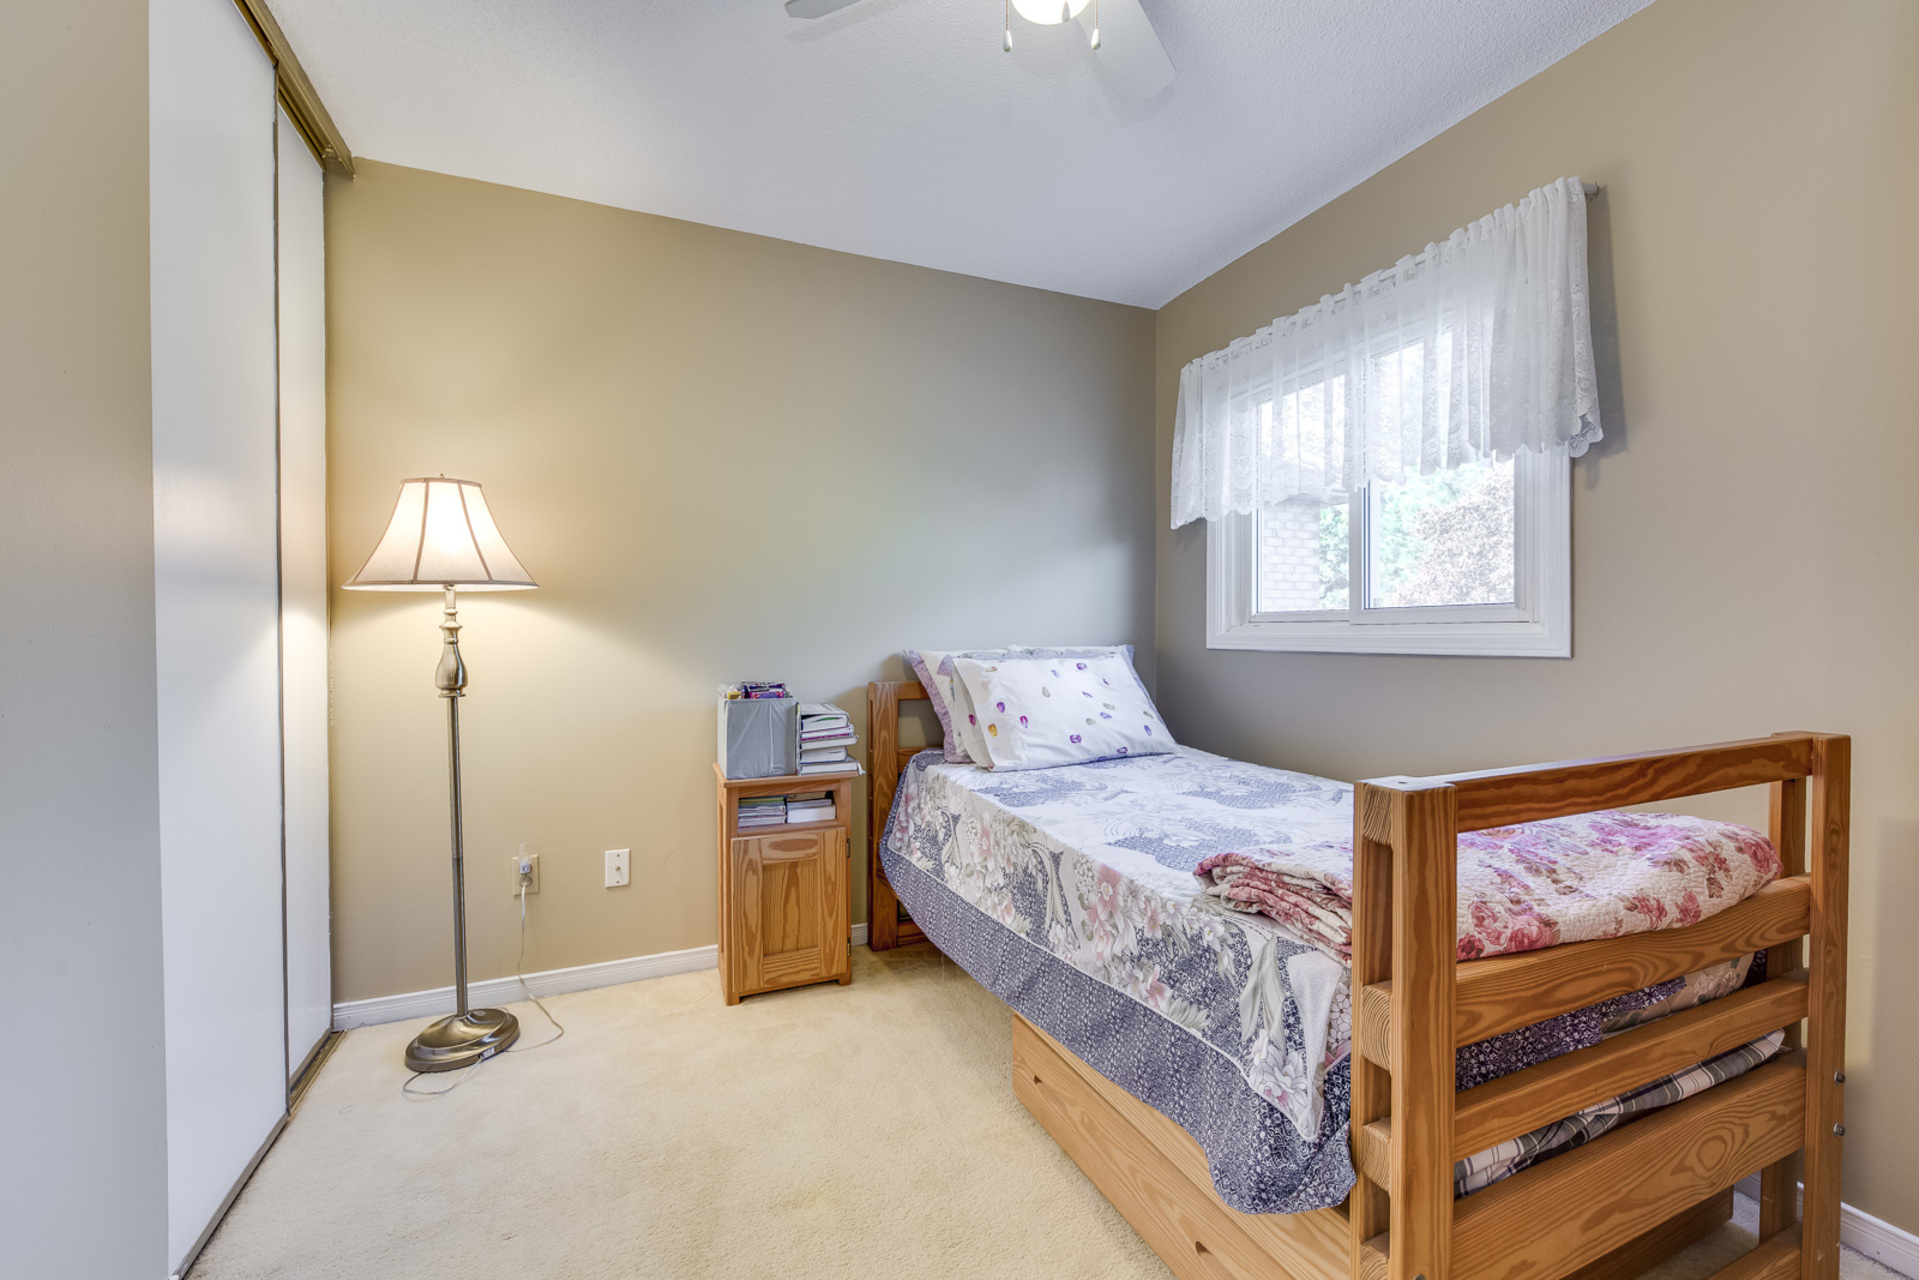 3rd bedroom - 4230 Credit Pointe Drive, Mississauga - Elite3 & Team at 4230 Credit Pointe Drive, East Credit, Mississauga